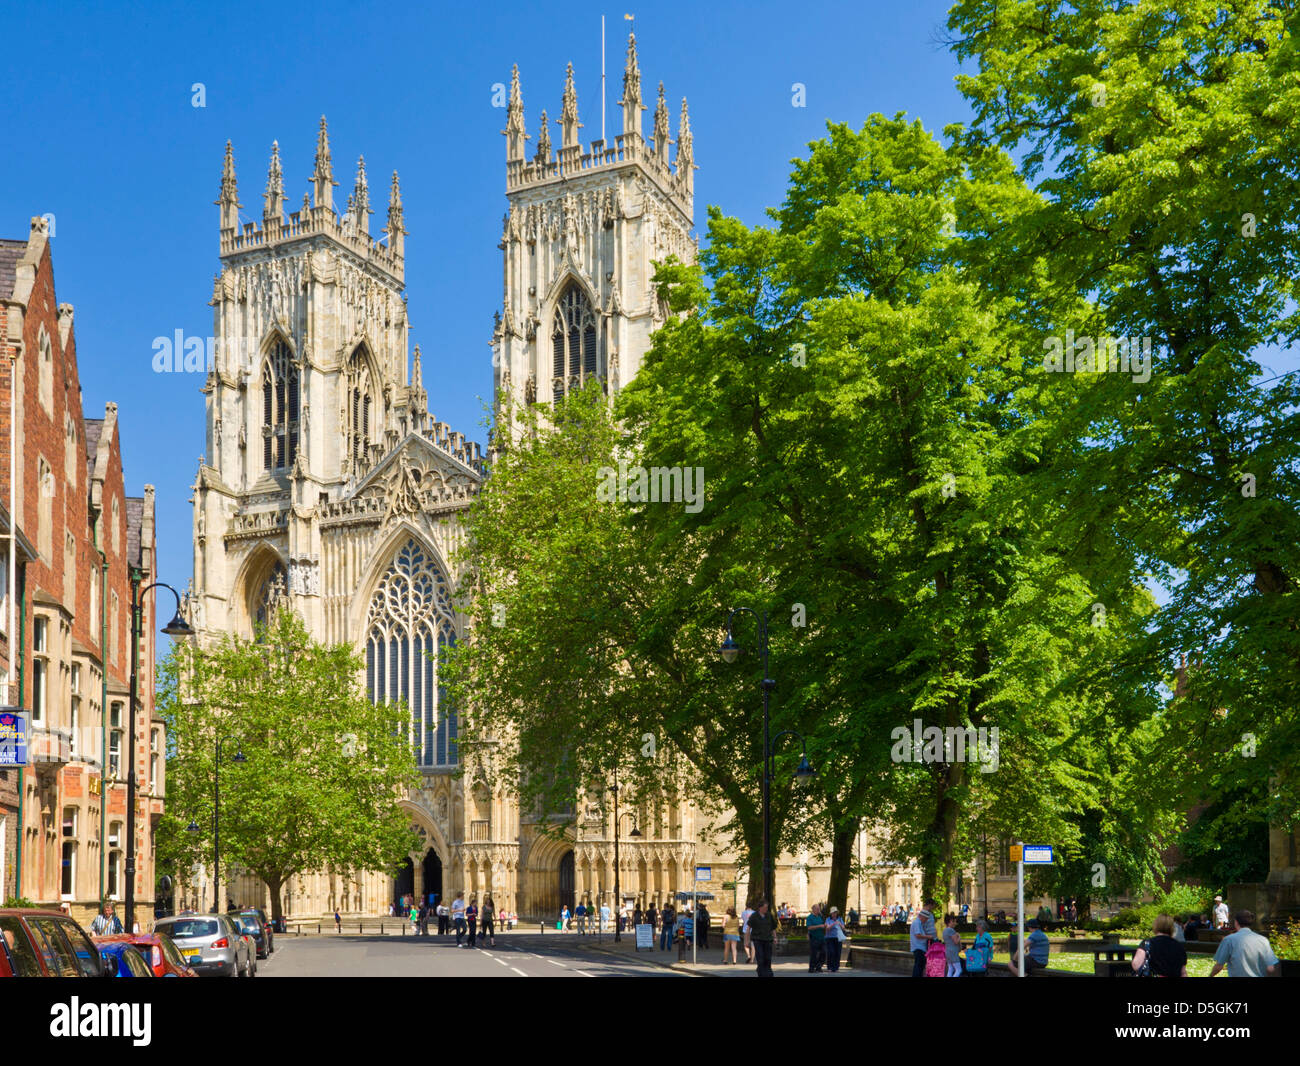 York Minster, Gothic cathedral, city of York, Yorkshire, England, UK, GB, EU, Europe - Stock Image